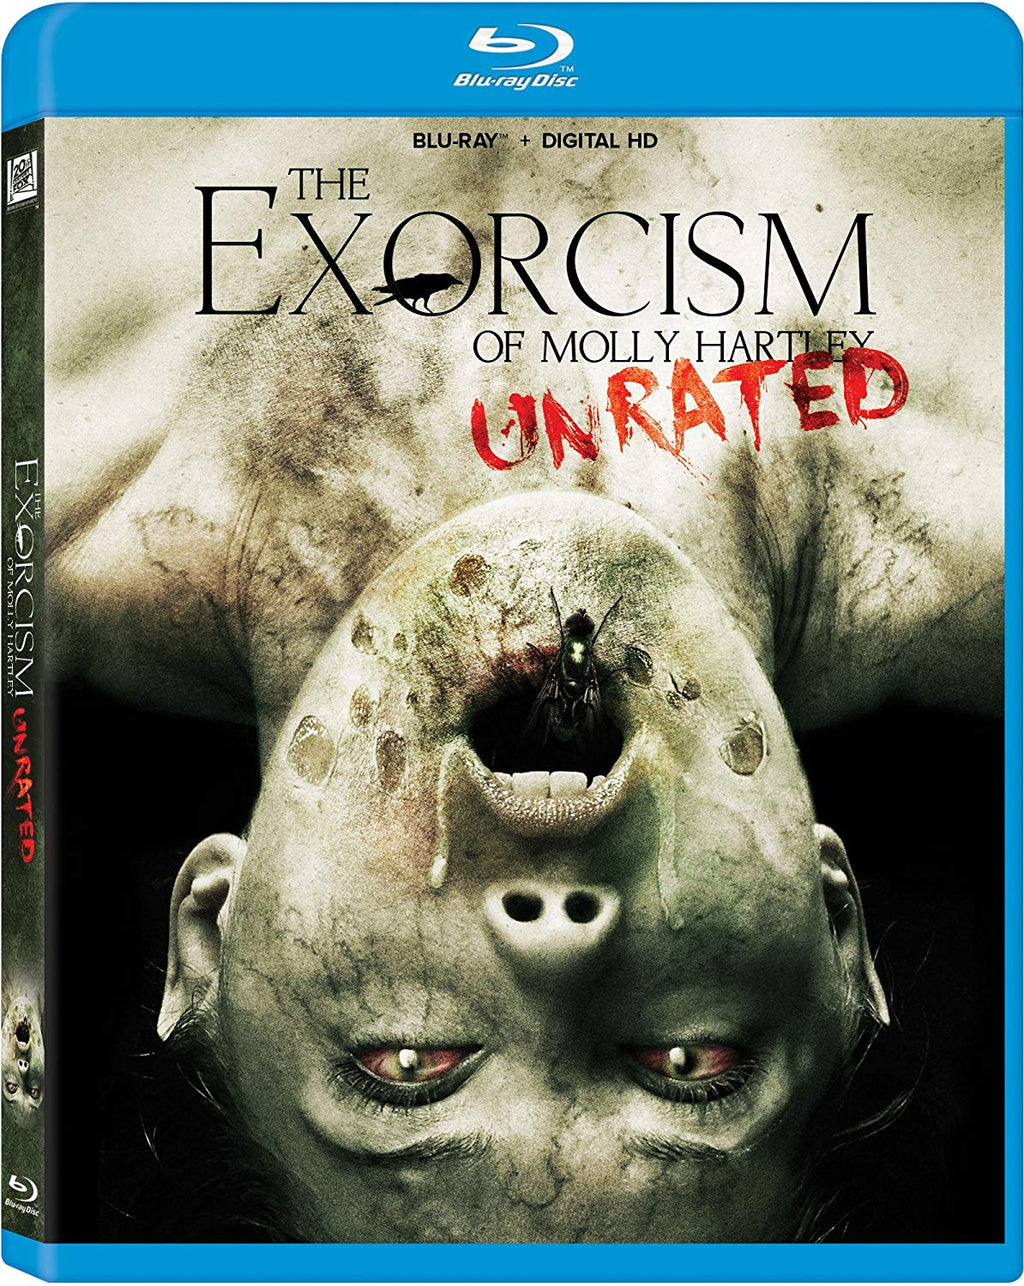 The Exorcism of Molly Hartley Unrated Blu-ray + Digital Copy